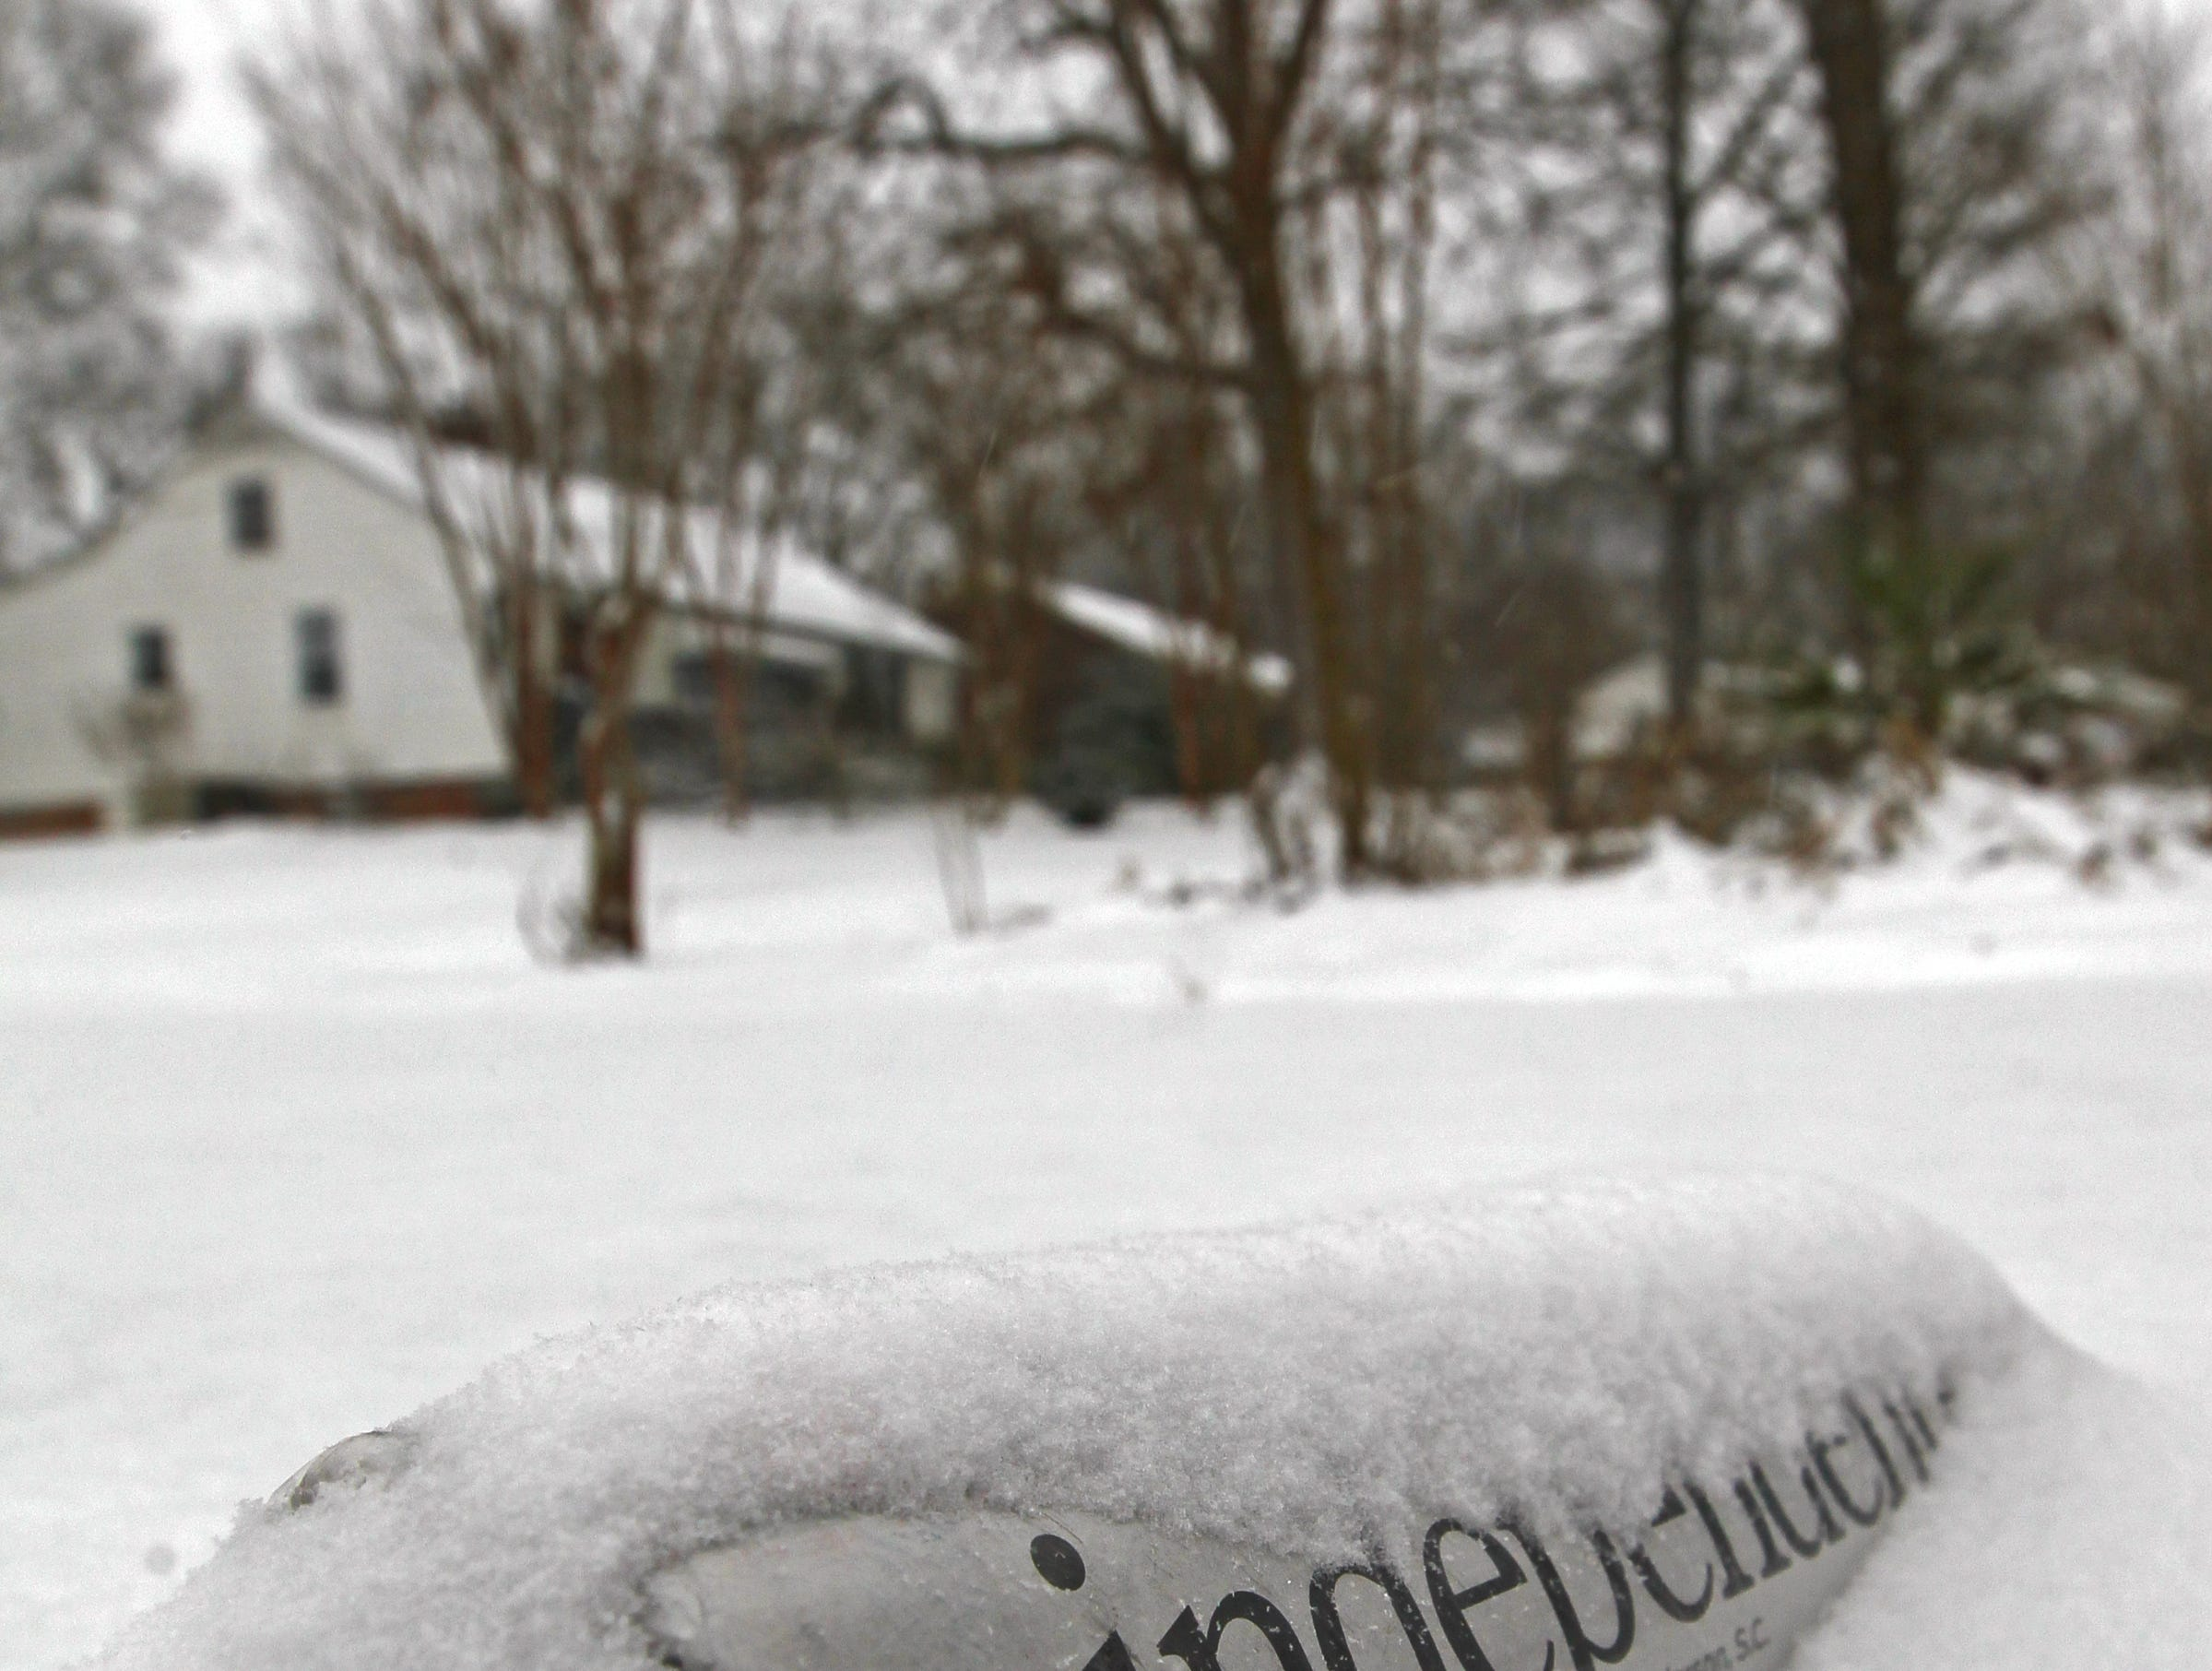 An Anderson Independent Mail newspaper, wrapped in a plastic bag, is partly covered in snow in a driveway in Anderson during the first snow of 2014.